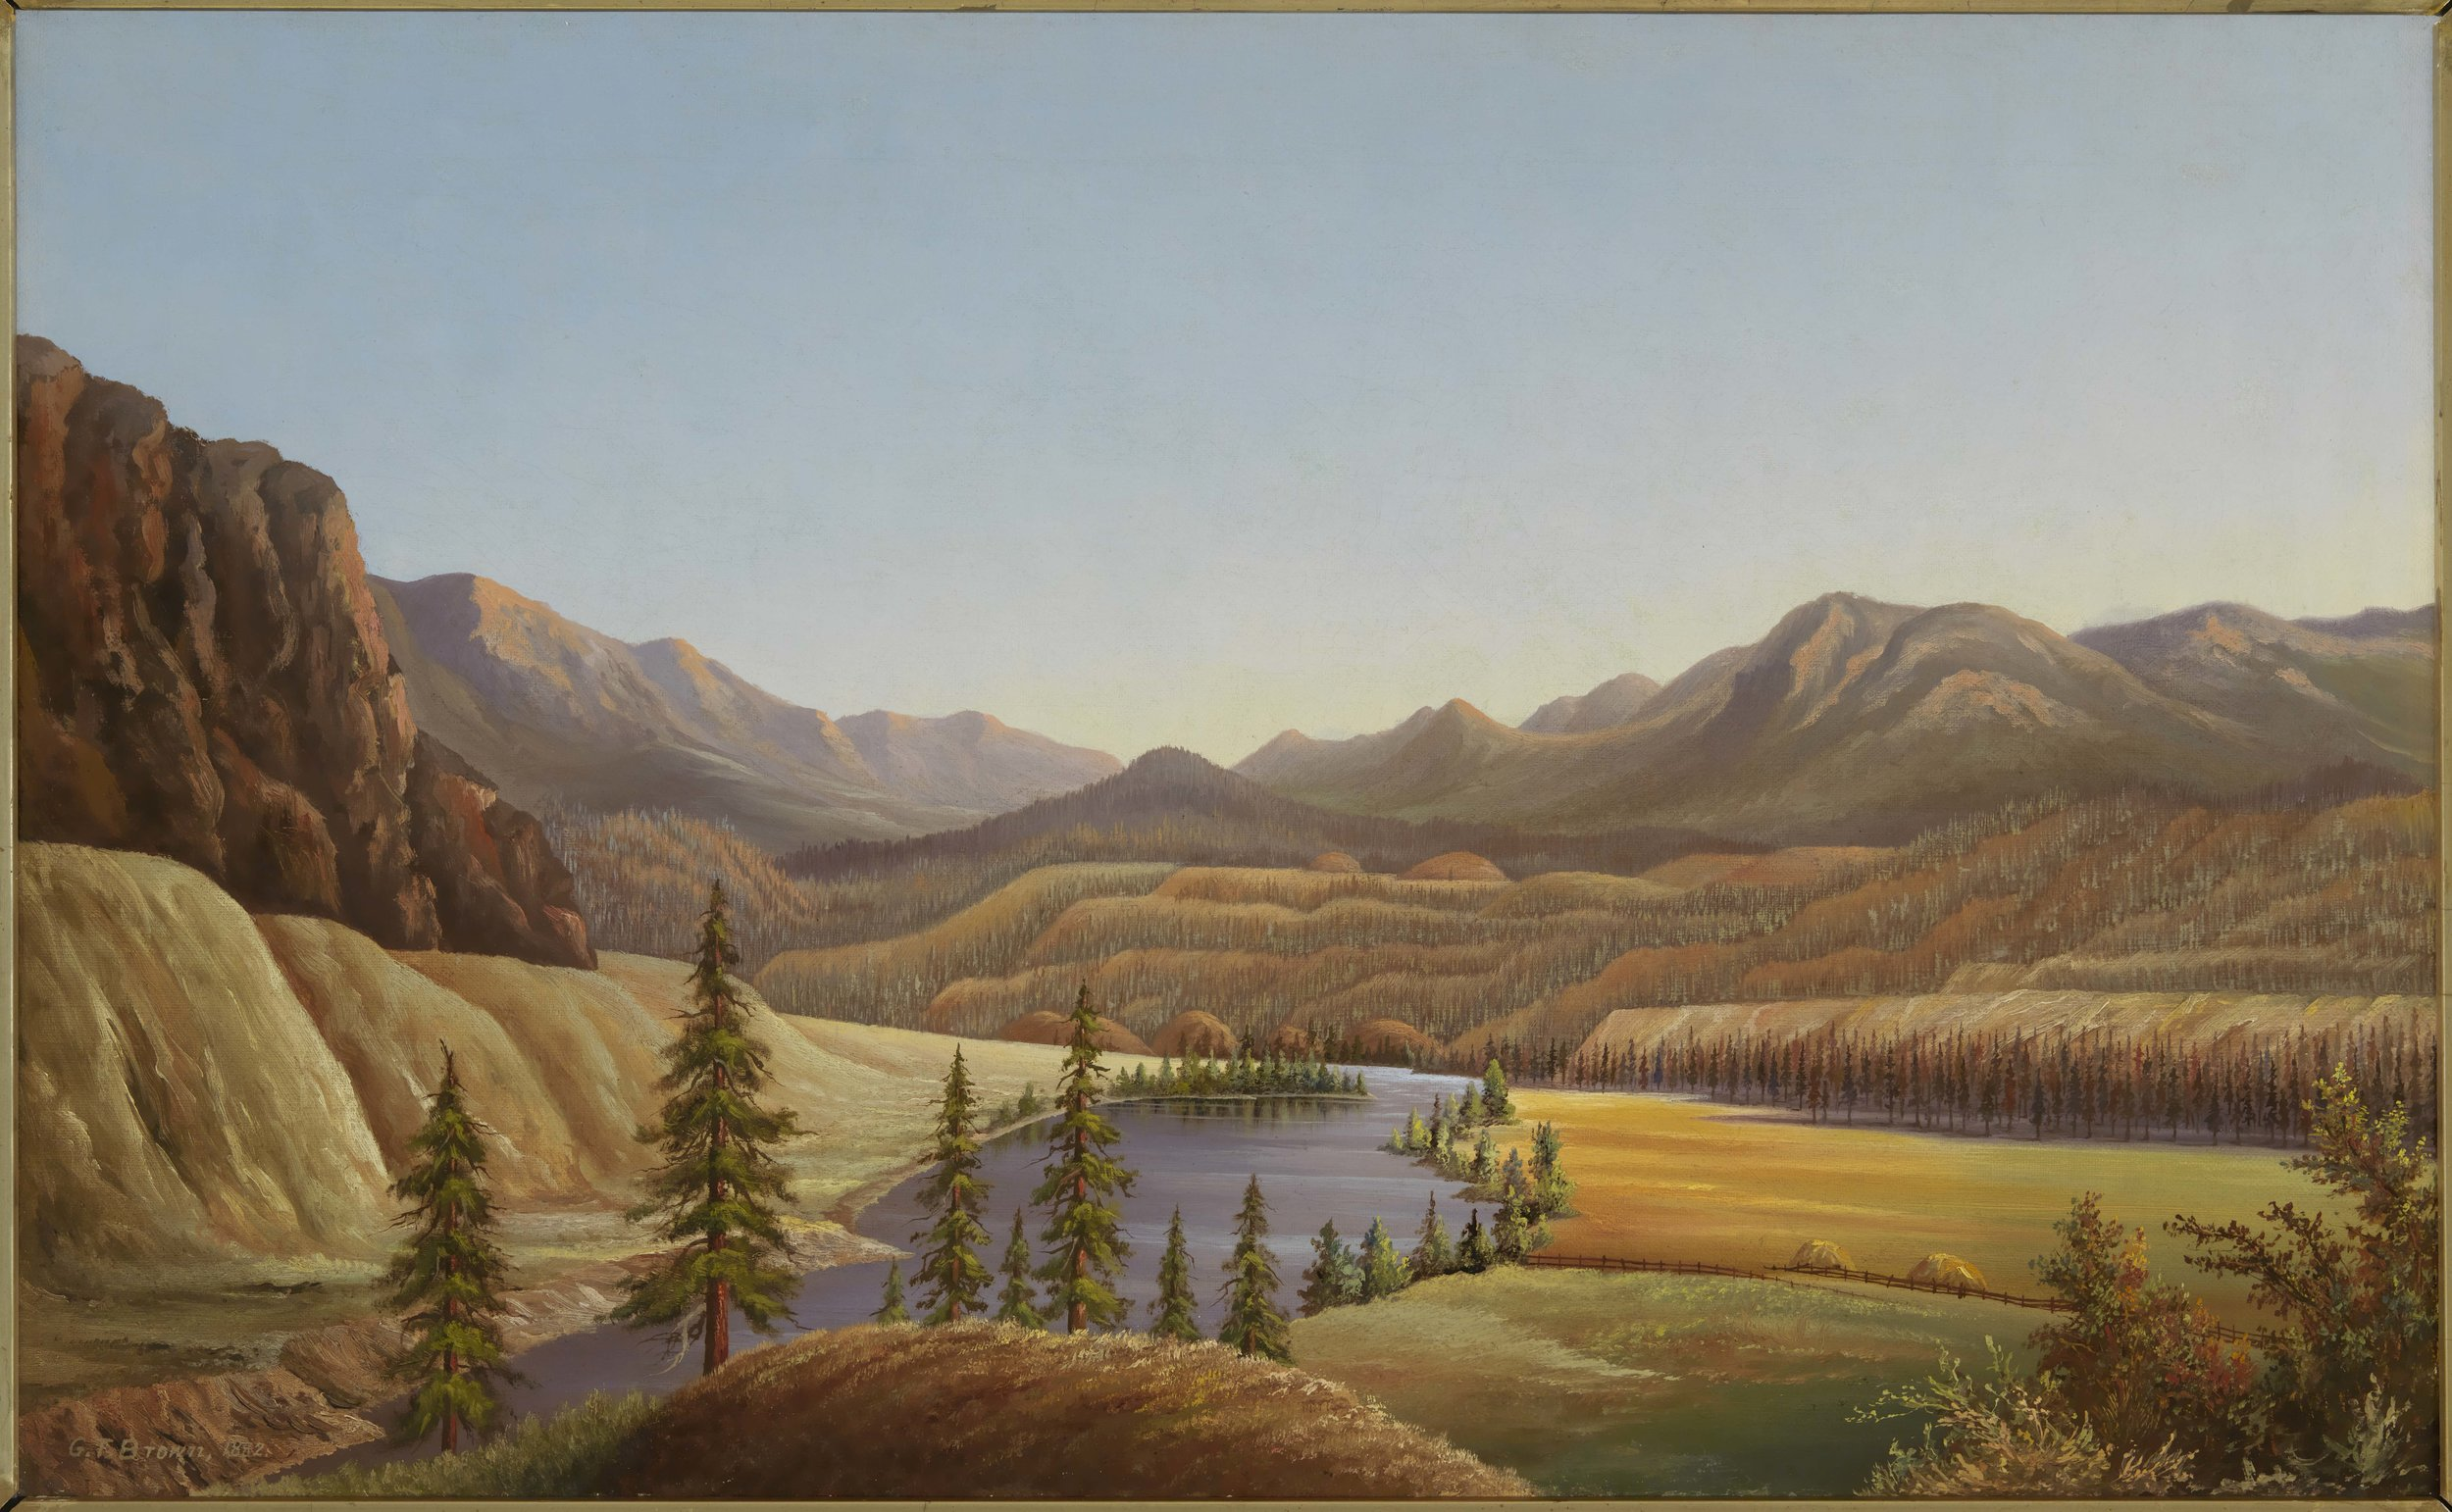 Grafton Tyler Brown,View of Lake Okanagan, British Columbia,1882,Collection of the Smithsonian National Museum of African American History and Culture, Gift of Curtis E.Ransom in memory of Julia Turner Ransom  Letterhead featuring Brown's work was donated to the NMAAHC by Wells Fargo.